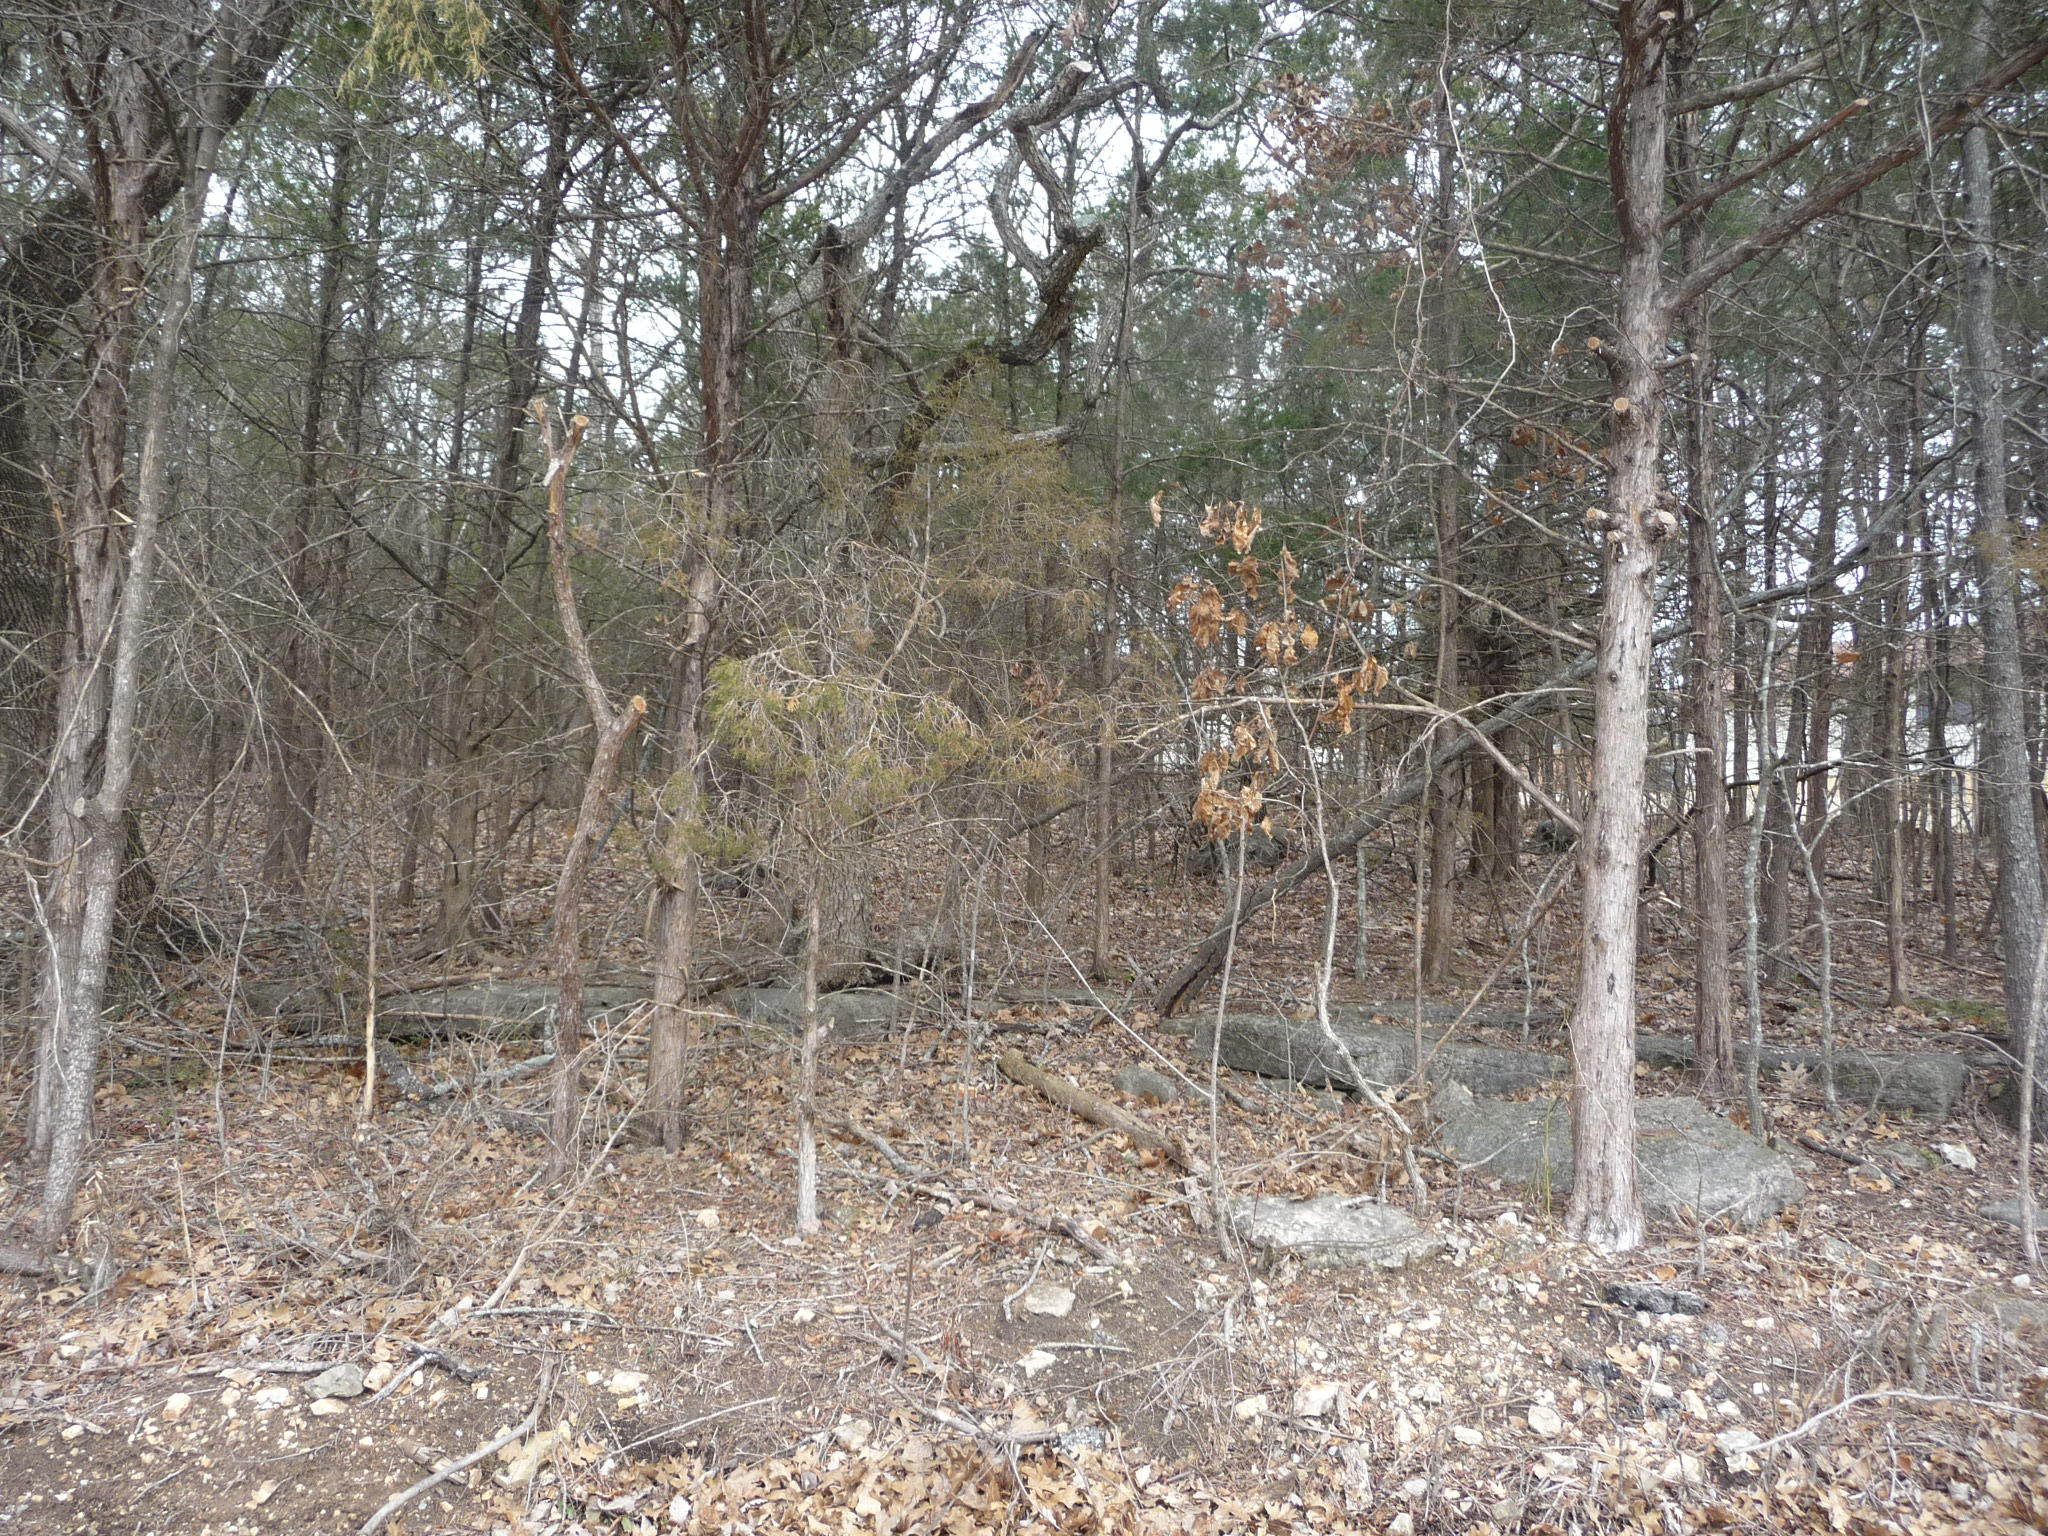 Tbd W. Valley View, Lot 13 Kimberling City, MO 65686